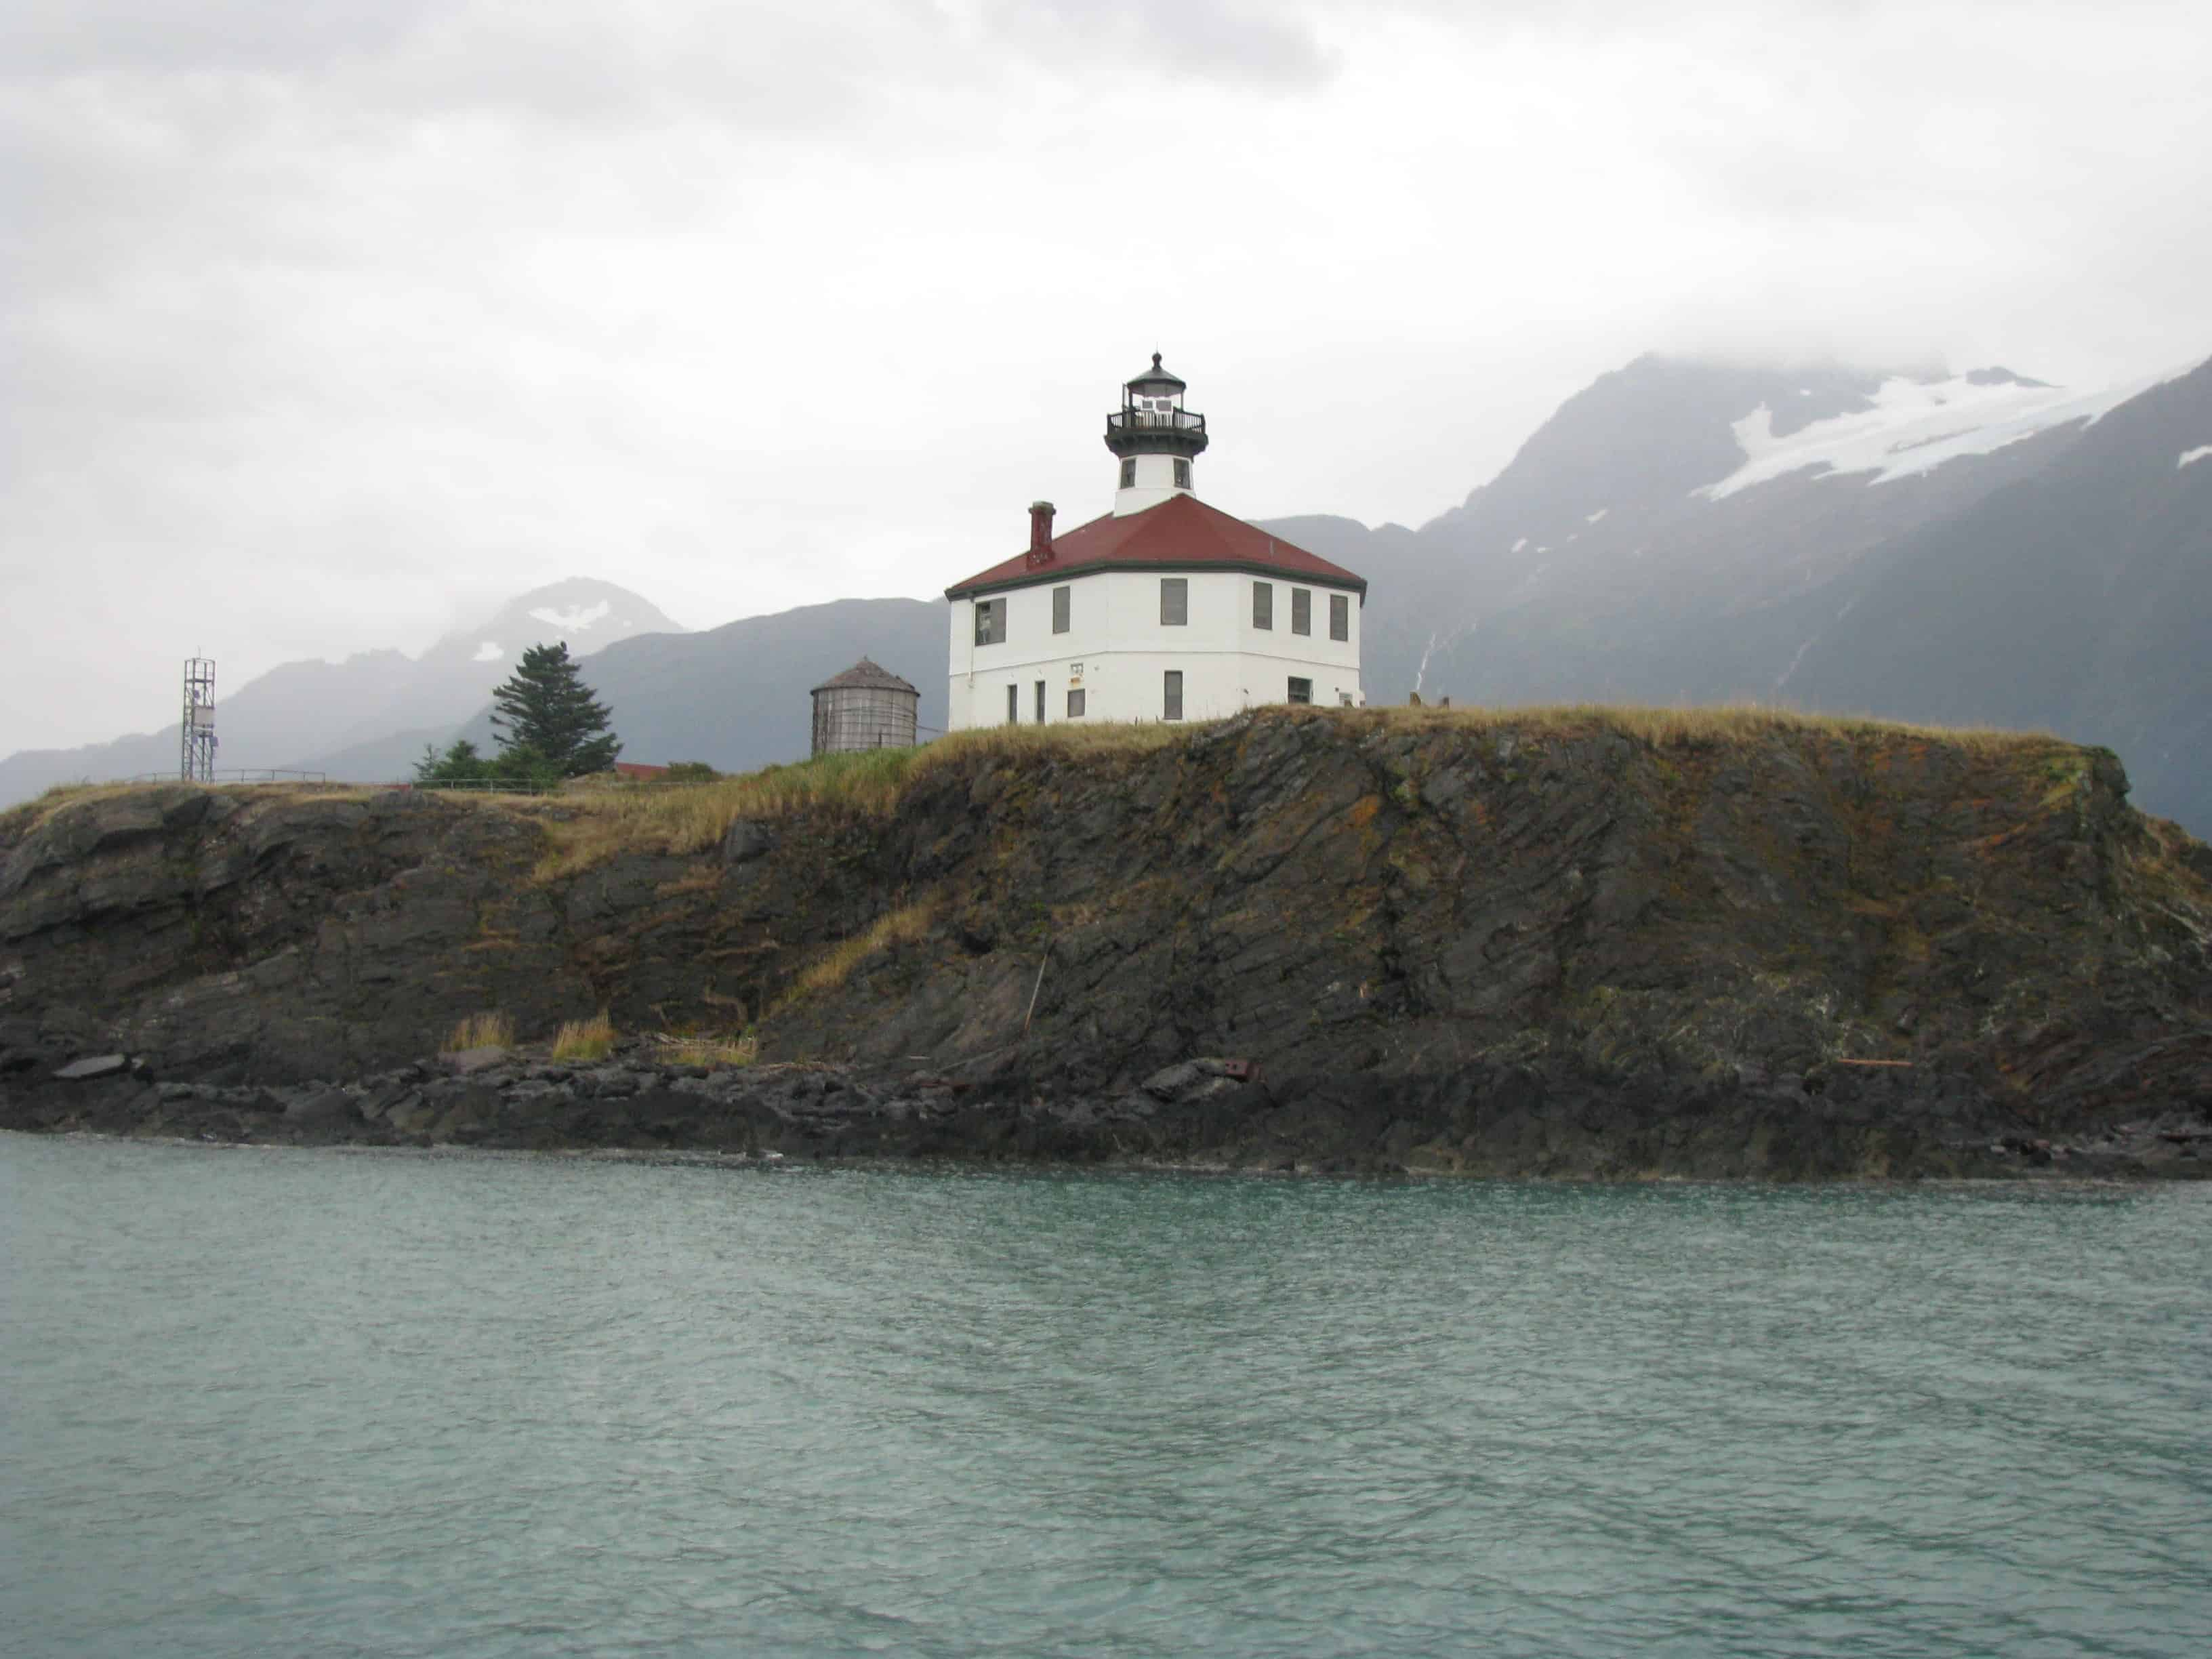 Eldred Rock Lighthouse, Eldred Rock, Alaska